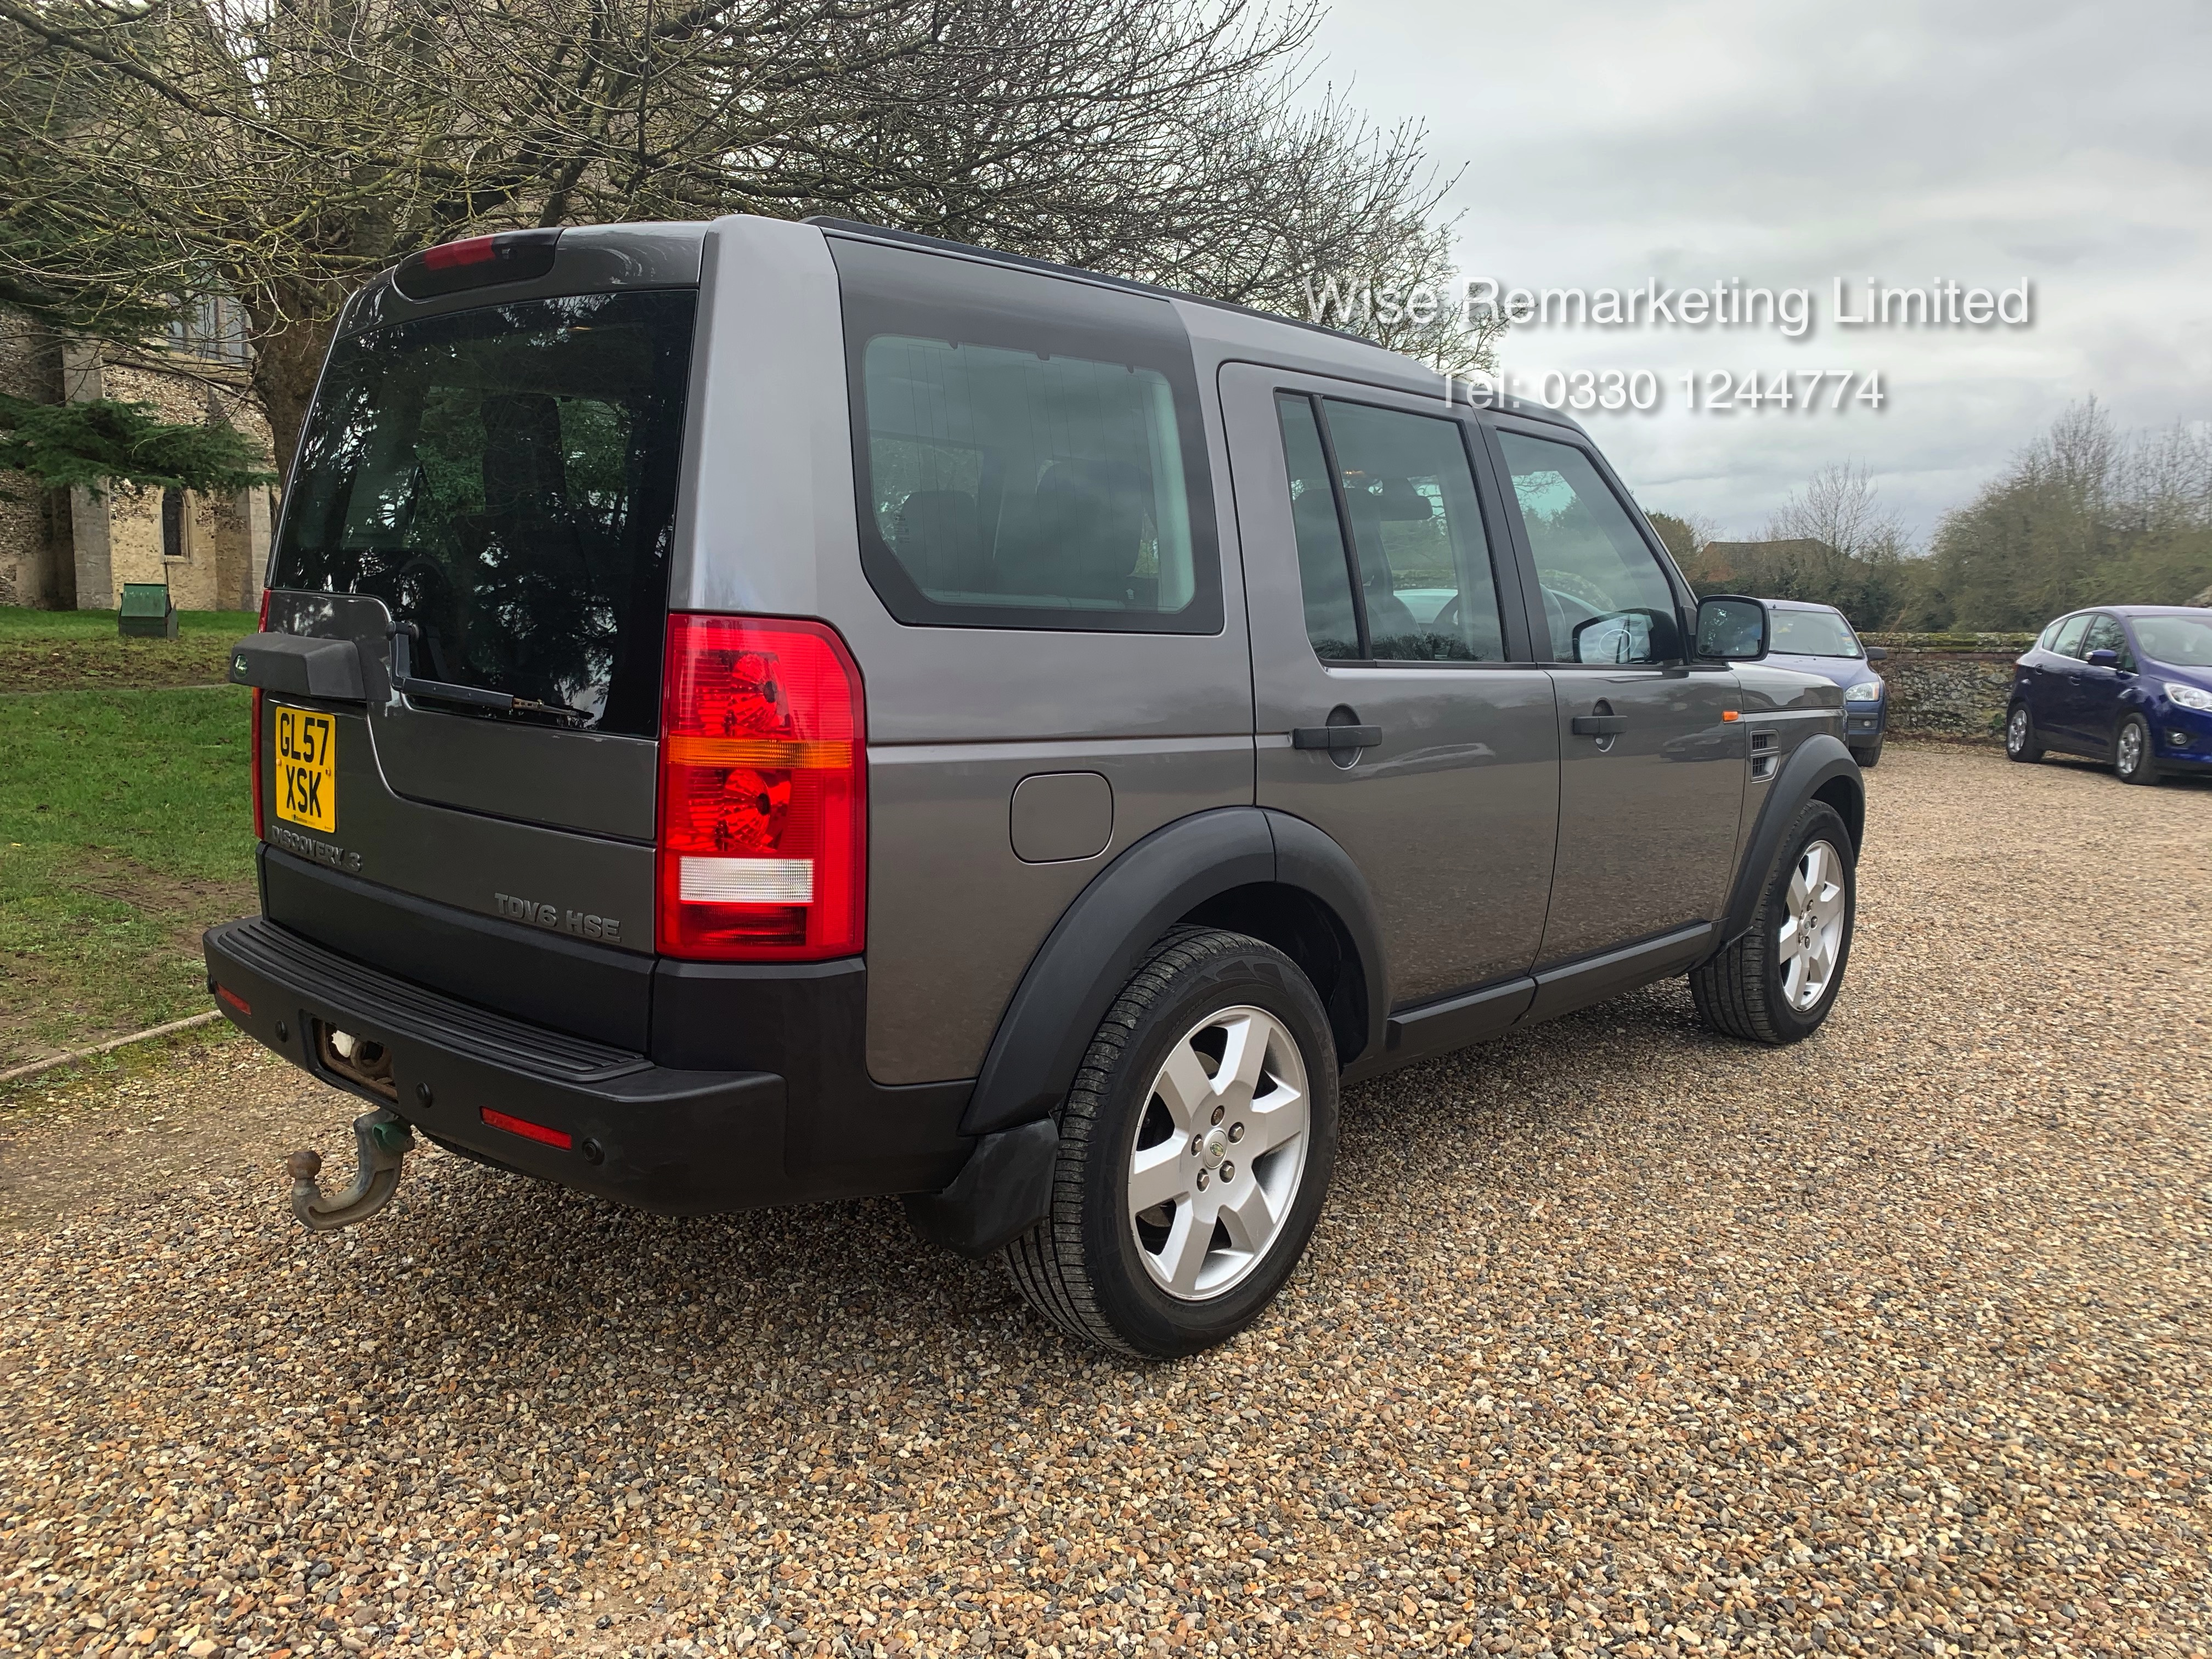 Land Rover Discovery 2.7 TDV6 HSE - Automatic - 2008 Reg - Full Leather - 7 Seater - Sat Nav - - Image 9 of 31